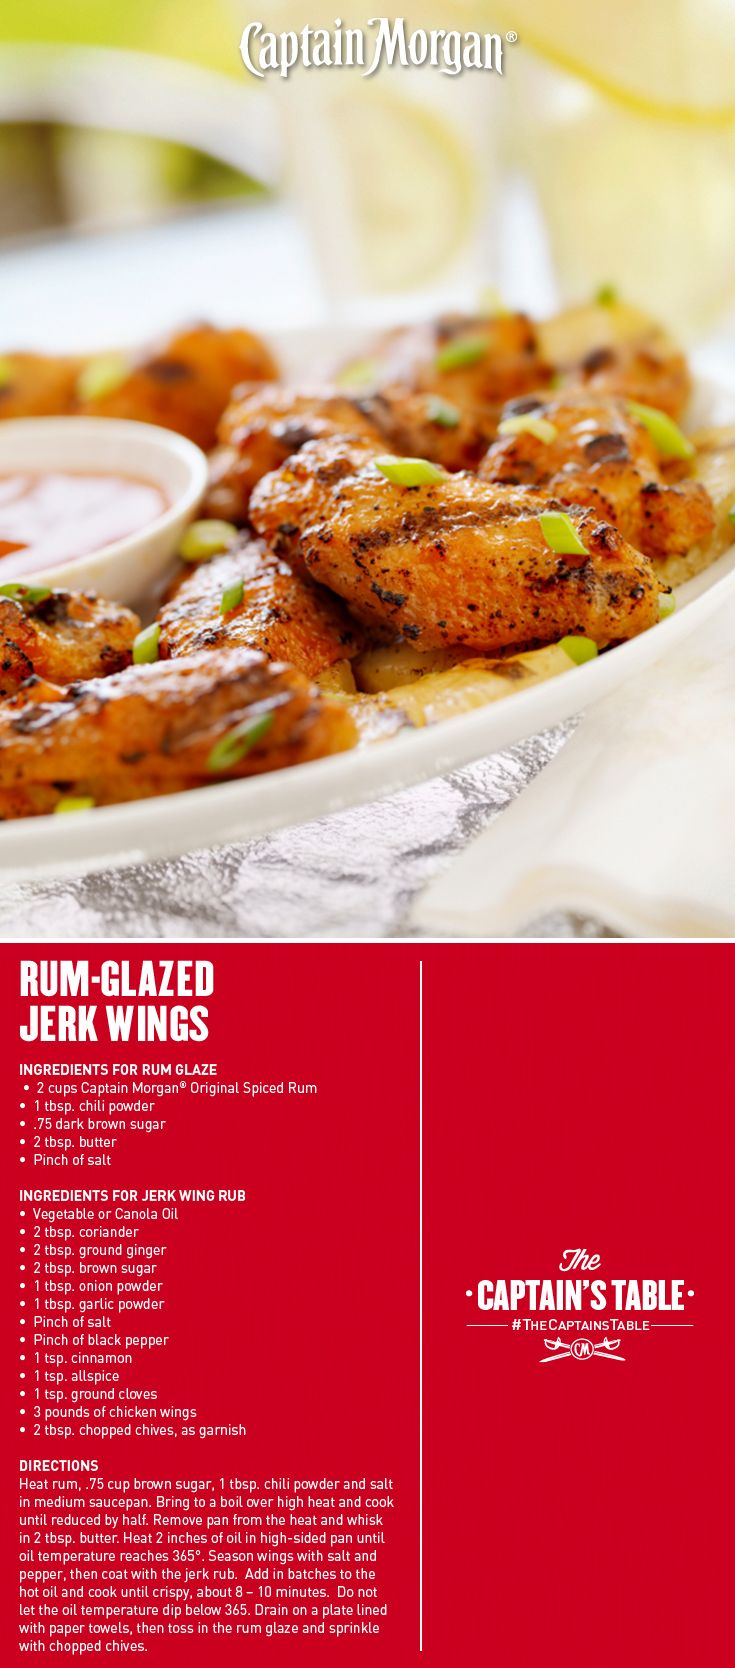 Rum-Glazed Jerk Wings: Tender chicken luxuriating in a Caribbean spiced glaze.  Treat everyone to a tropical getaway with this recipe! #Captain #Morgan #CaptainsTable #appetizer